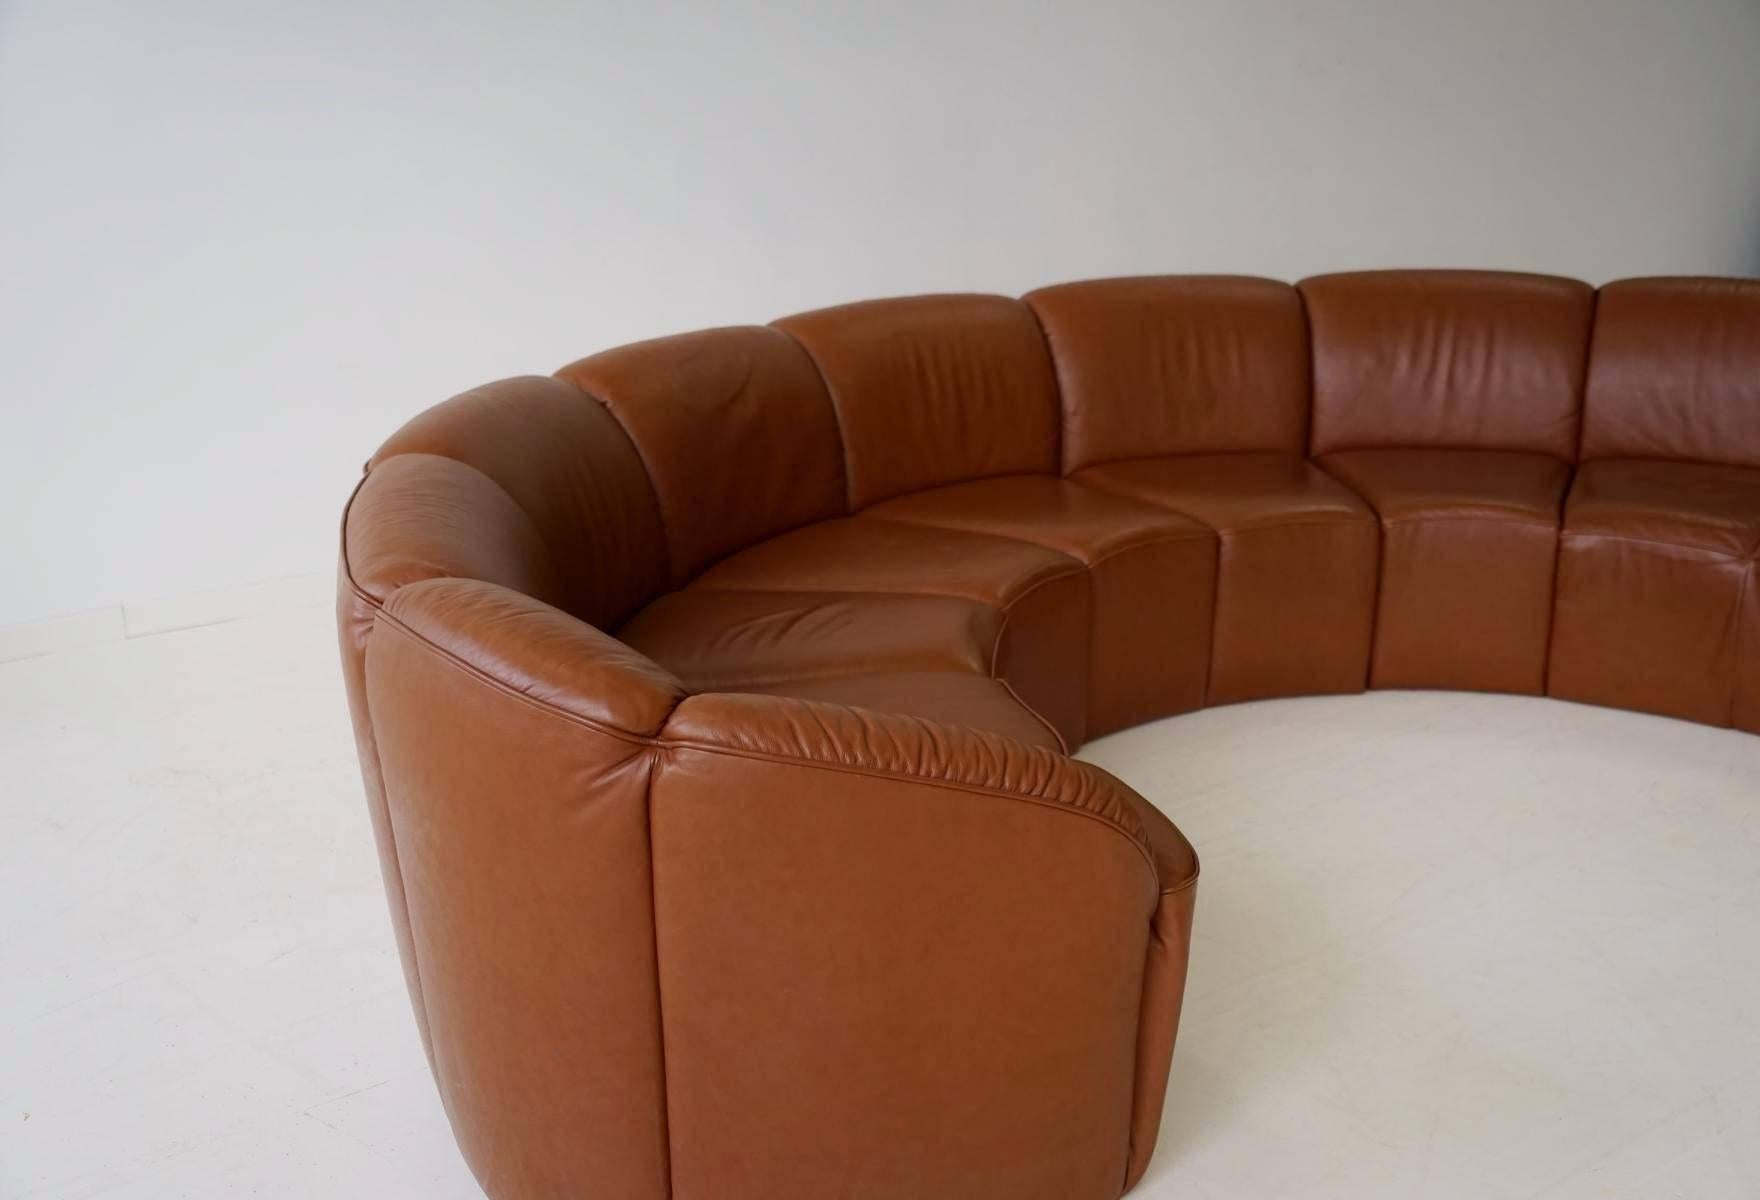 & Half Round Leather Lounge Sofa by Walter Knoll 1960s at 1stdibs